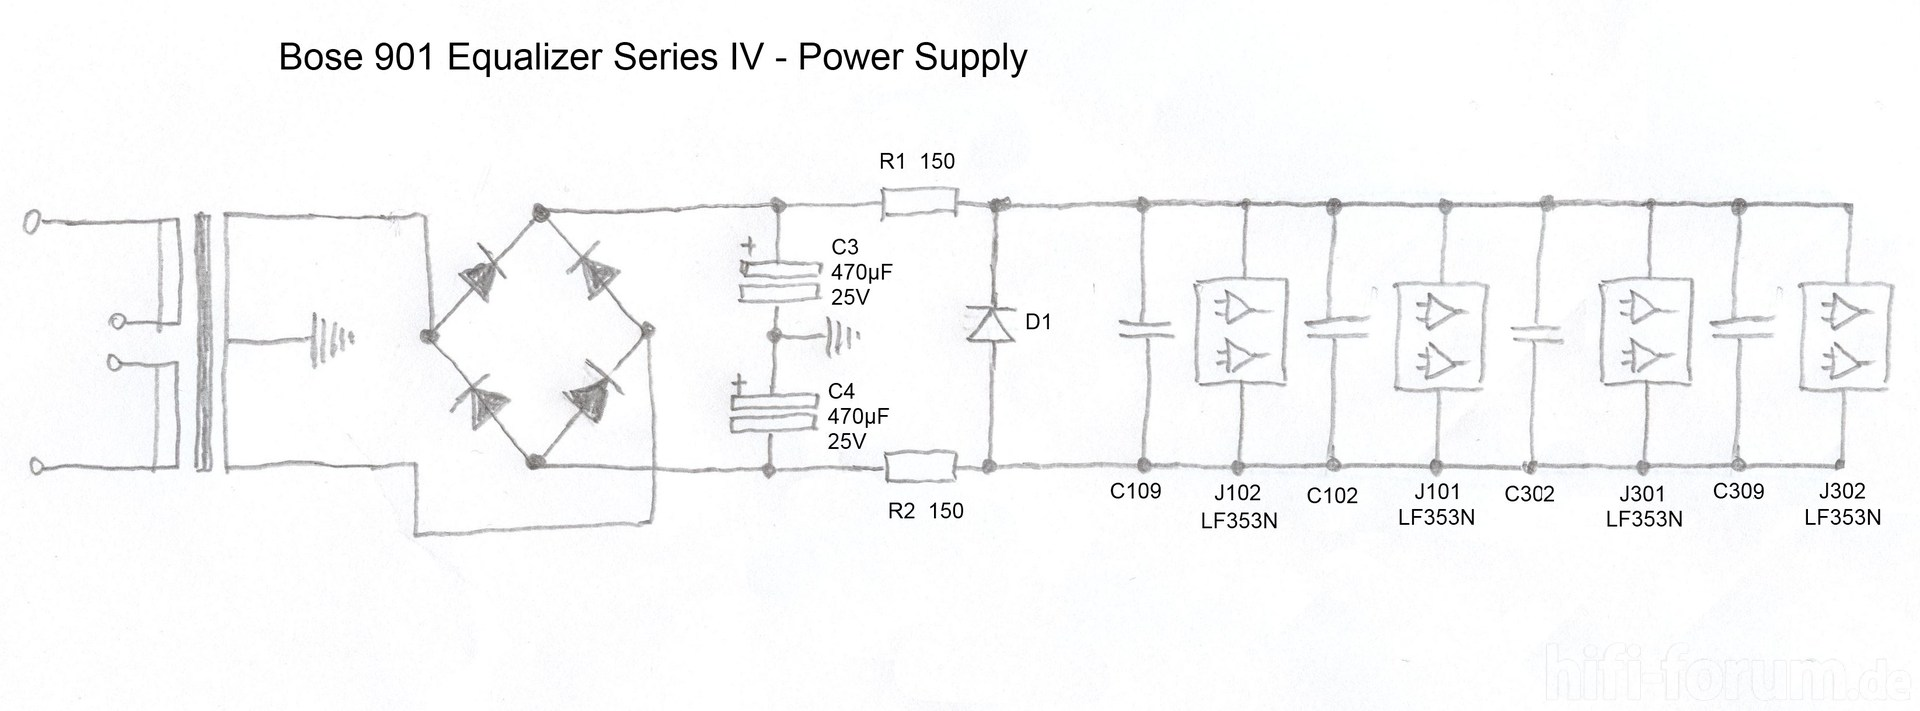 Bose 901 Series Iv Wiring Diagram 33 Images Acoustimass Equalizer Schematic Detail Power Supply 214315